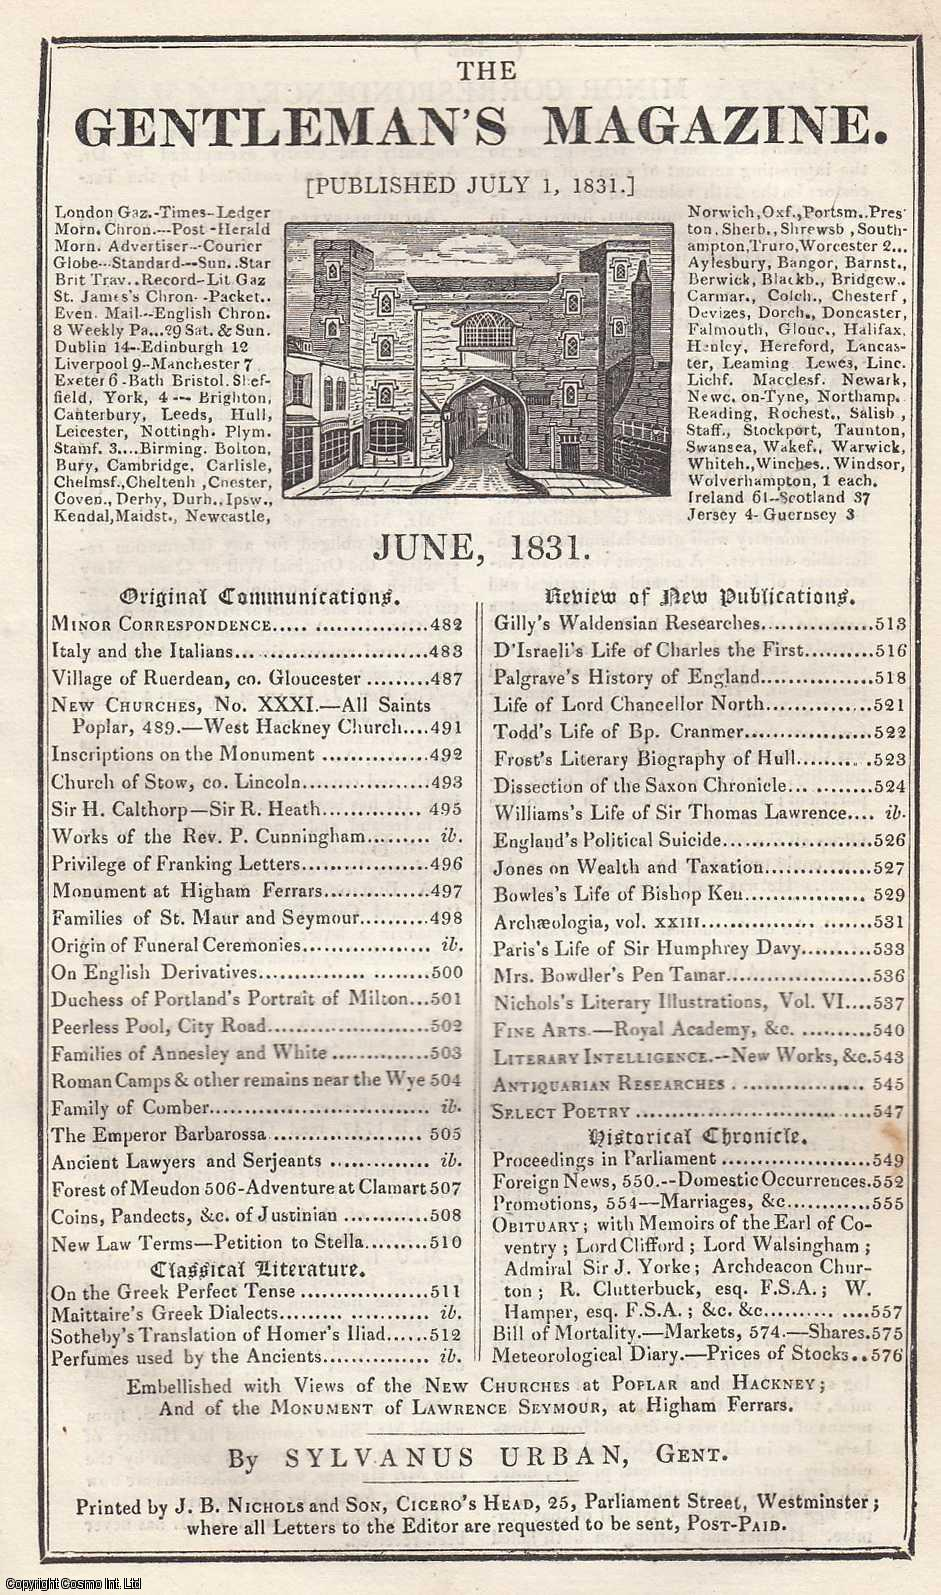 The Gentleman's Magazine for June 1831. FEATURING The Monument of Lawrence Seymour at Higham Ferrars., Urban, Sylvanus.